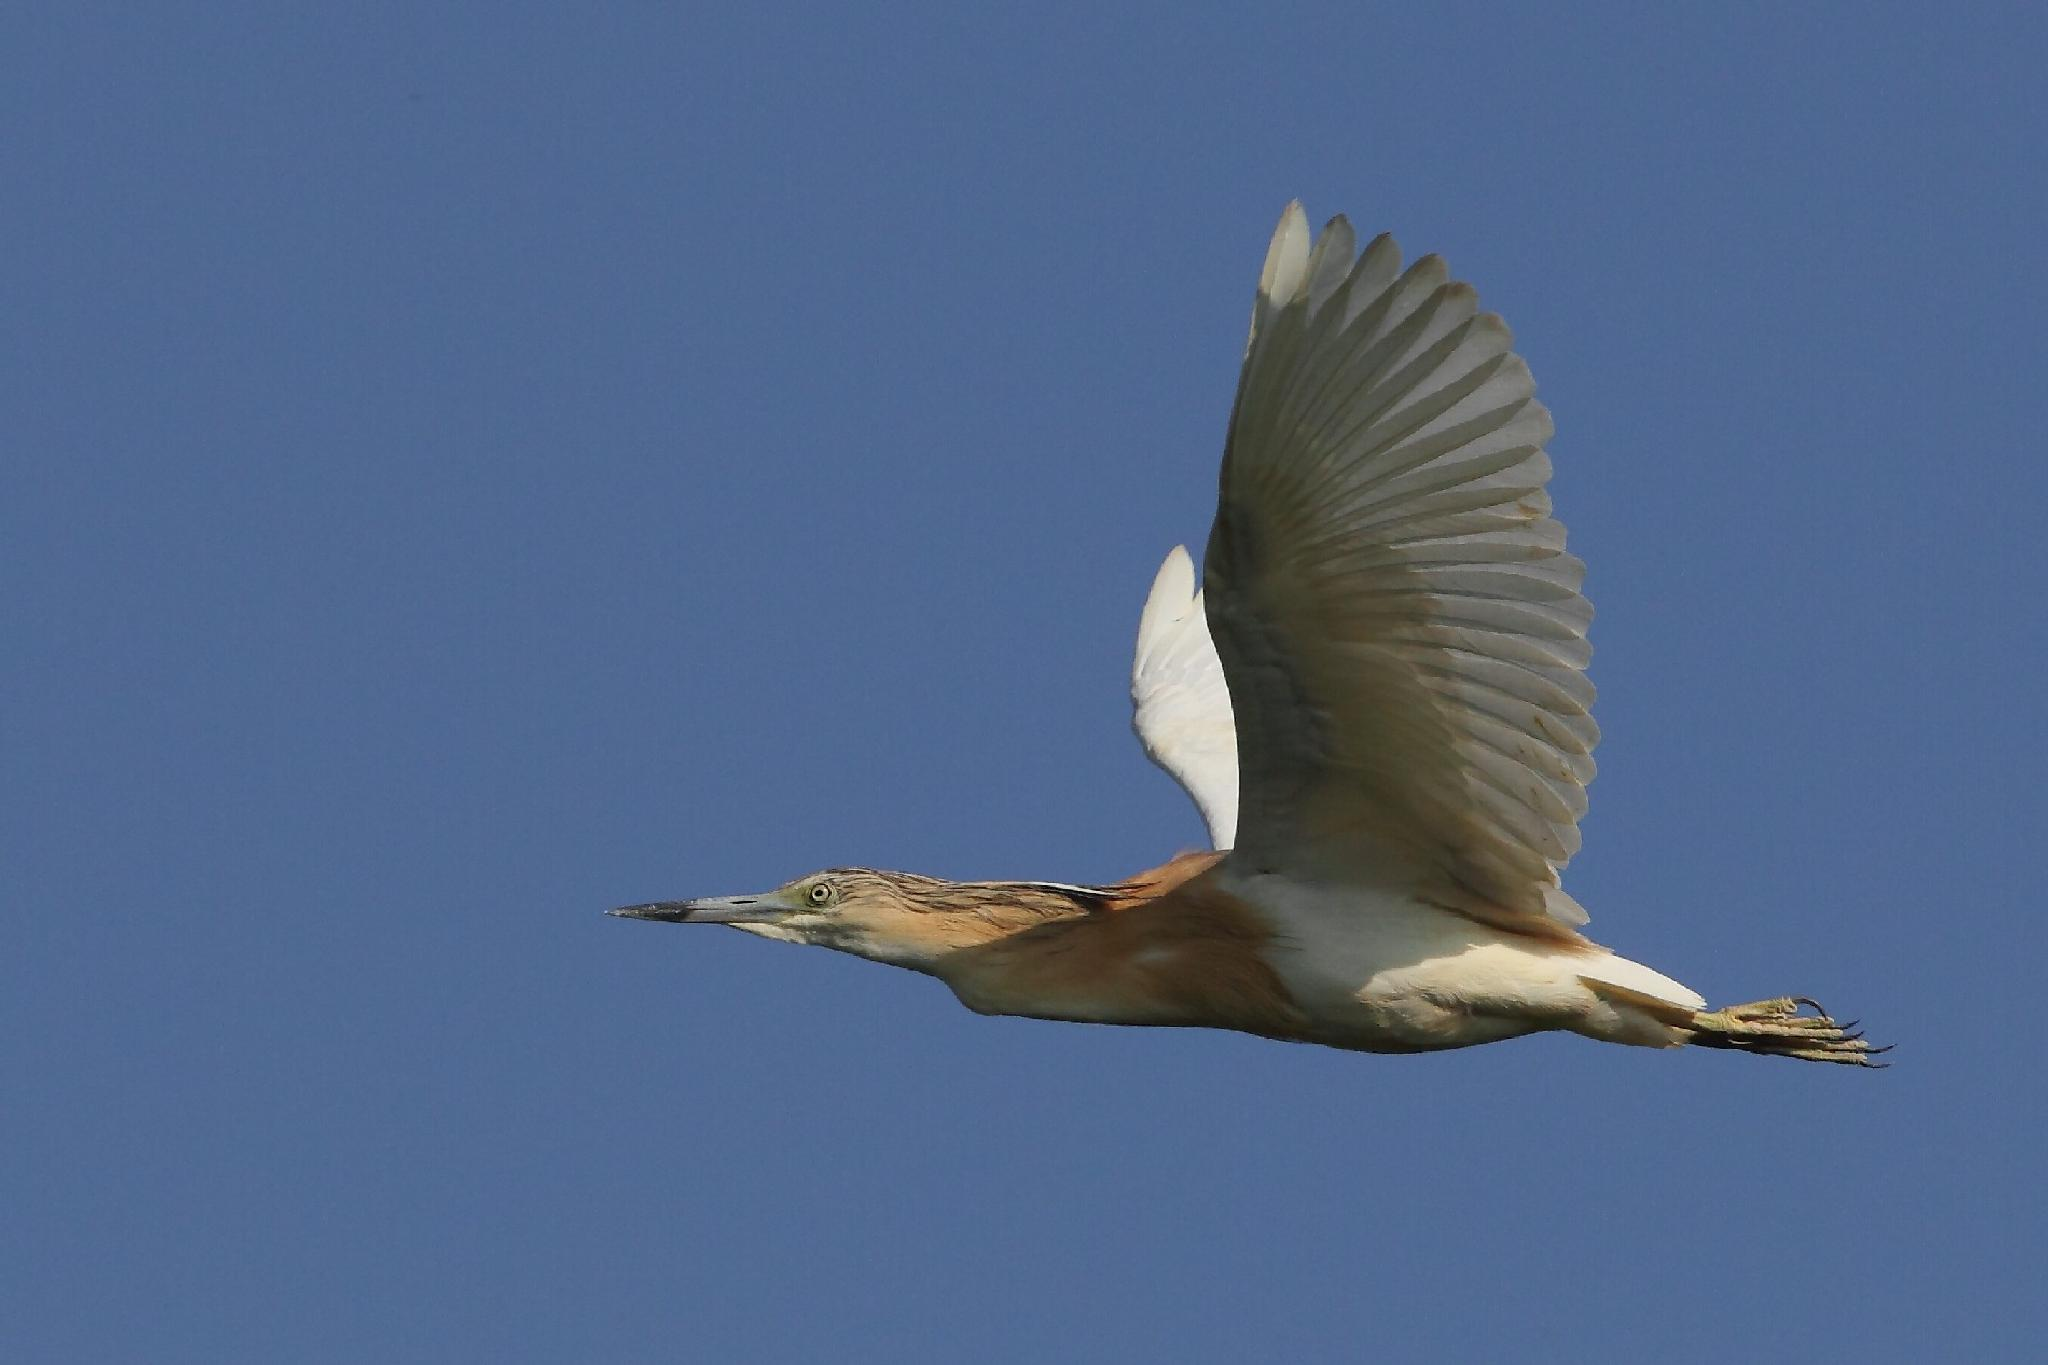 Squacco Heron by cristianocrolle